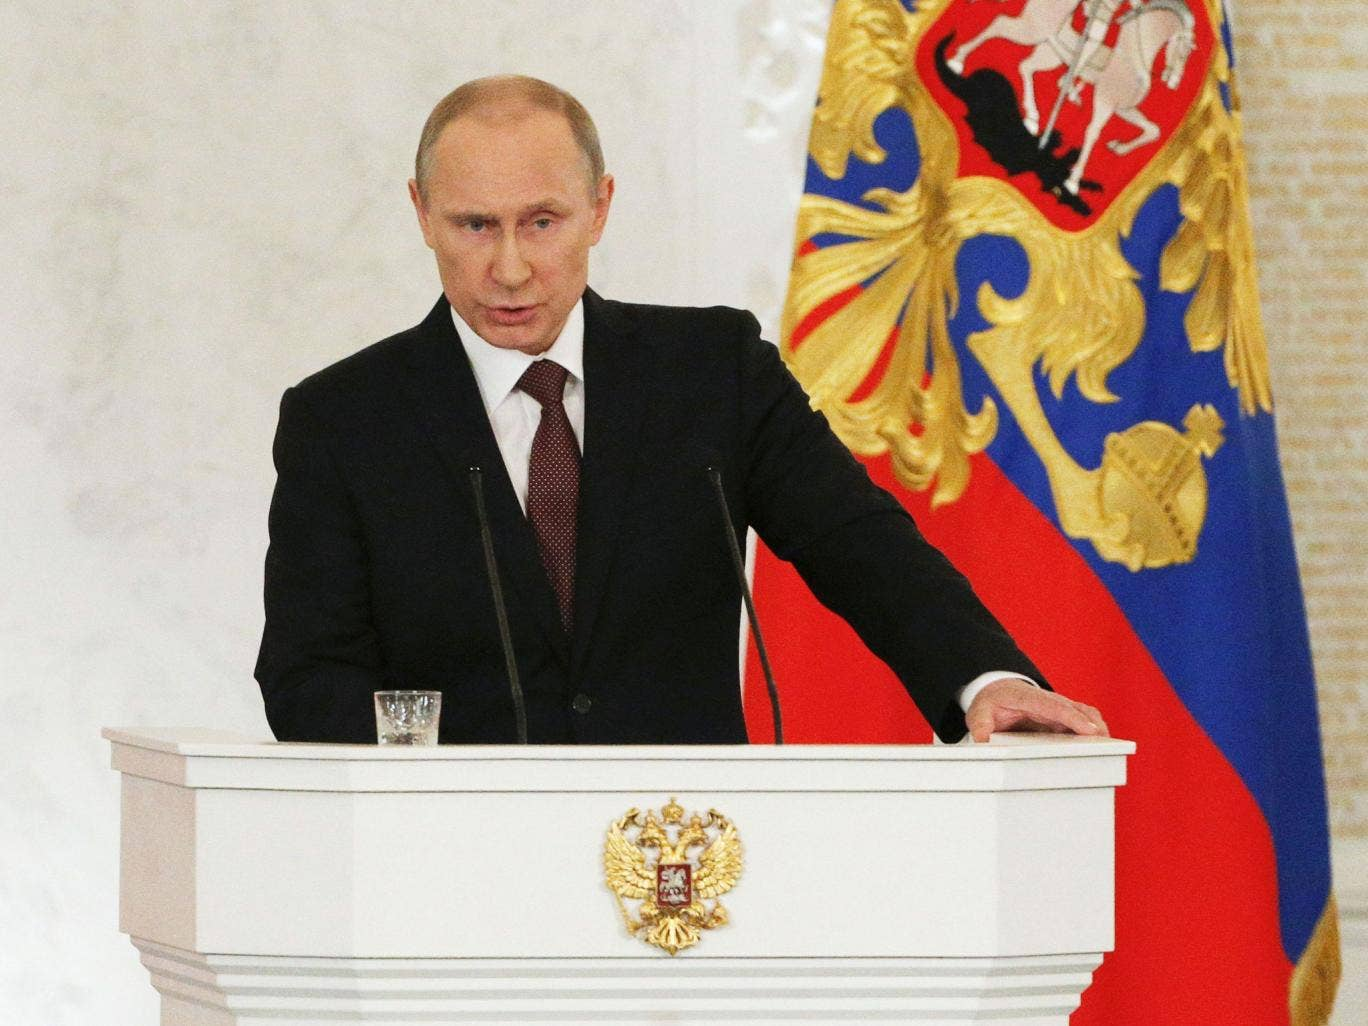 Russian President Vladimir Putin addresses the Federal Assembly, including State Duma deputies, members of the Federation Council, regional governors and civil society representatives, at the Kremlin in Moscow March 18, 2014